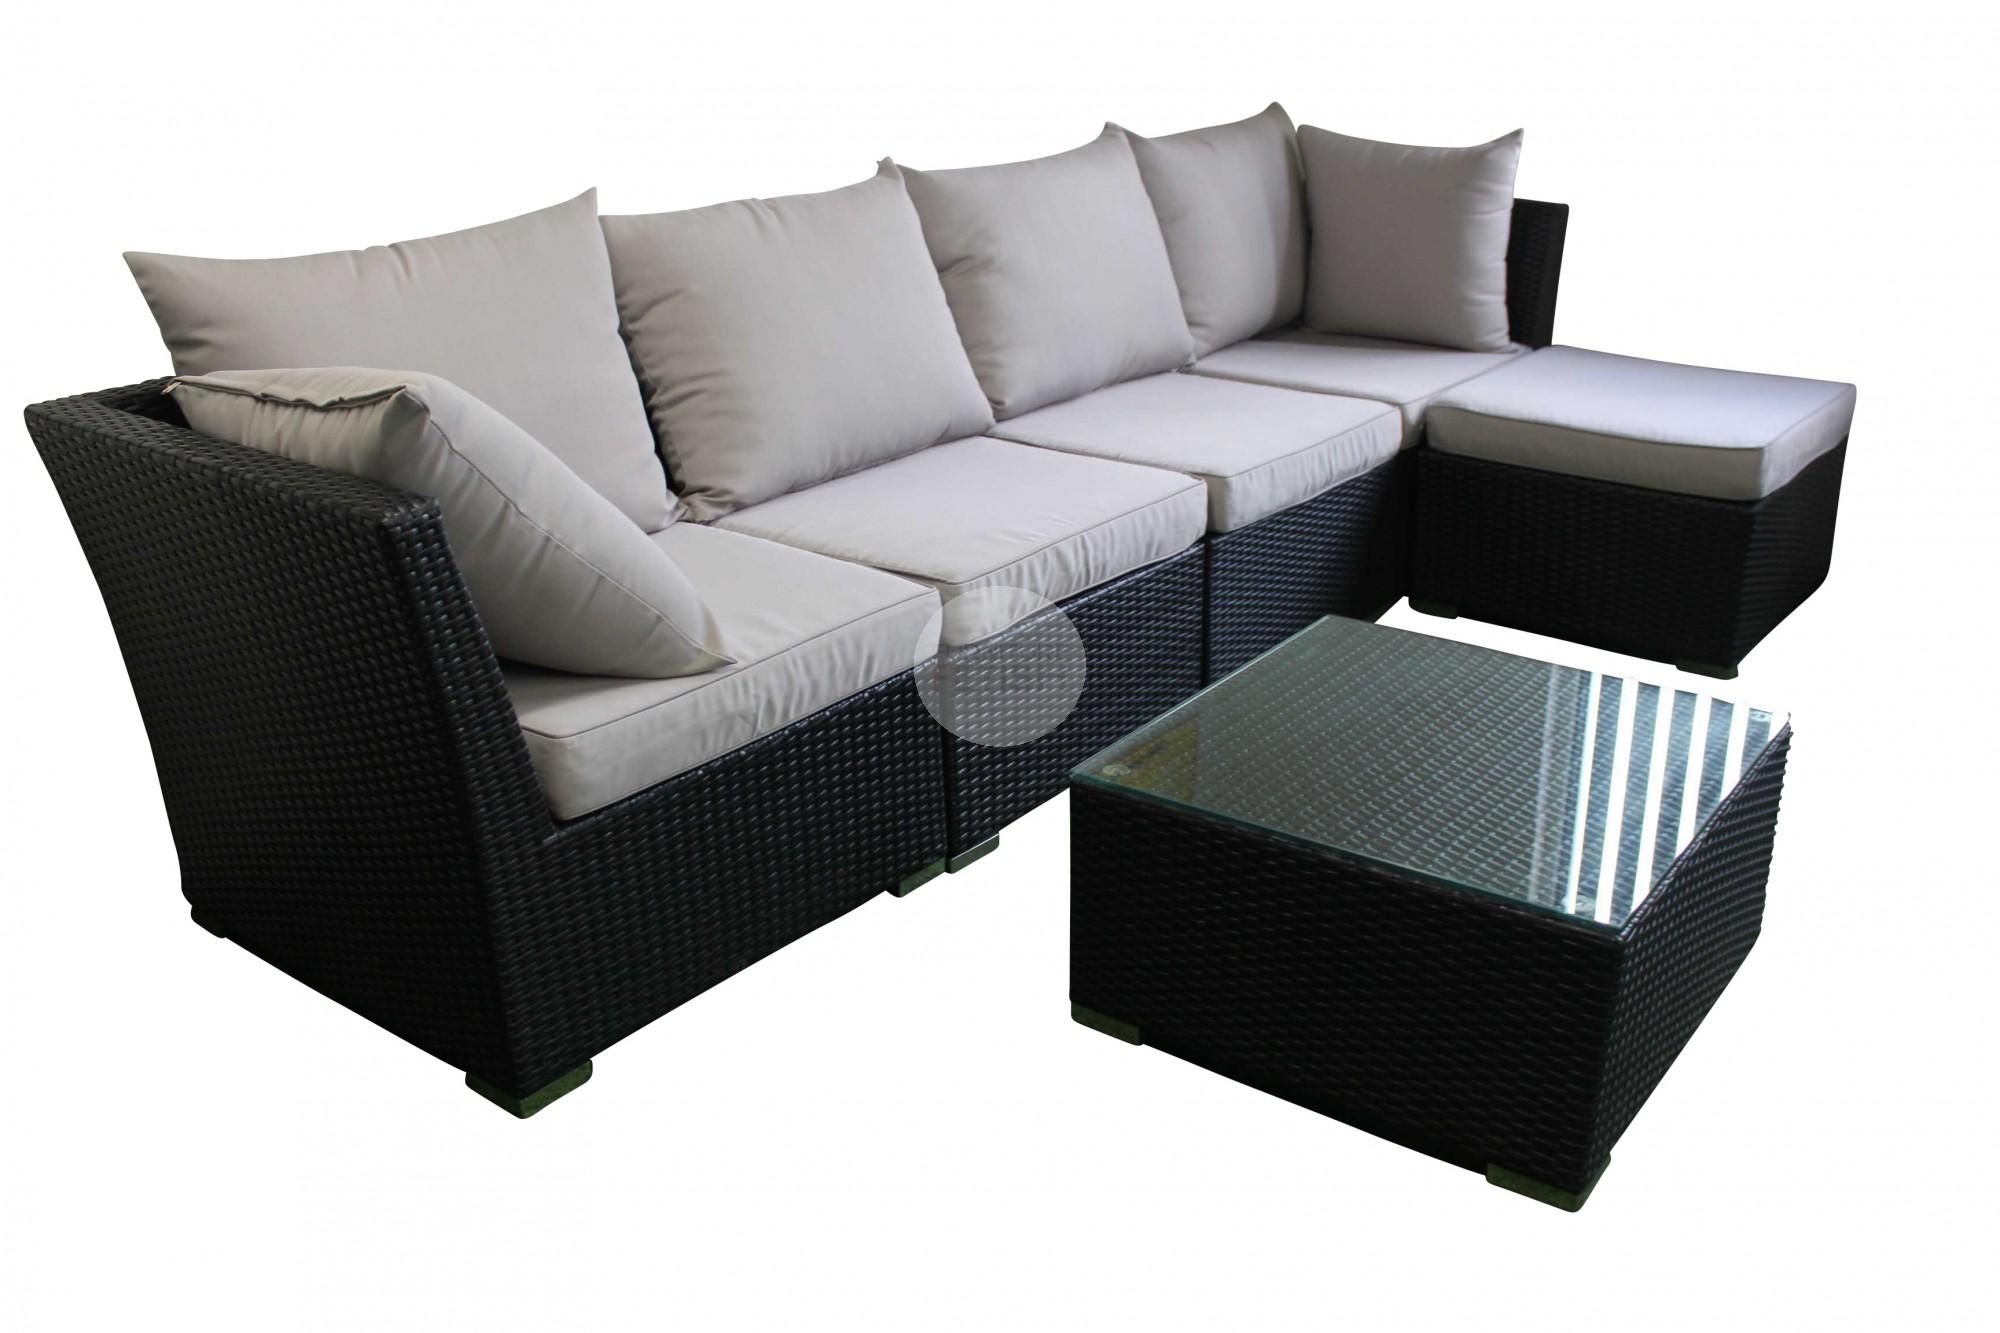 Outdoor Sofa Lounge With Chaise & Coffee Table – Rattan Wicker Regarding Black Wicker Sofas (View 18 of 20)